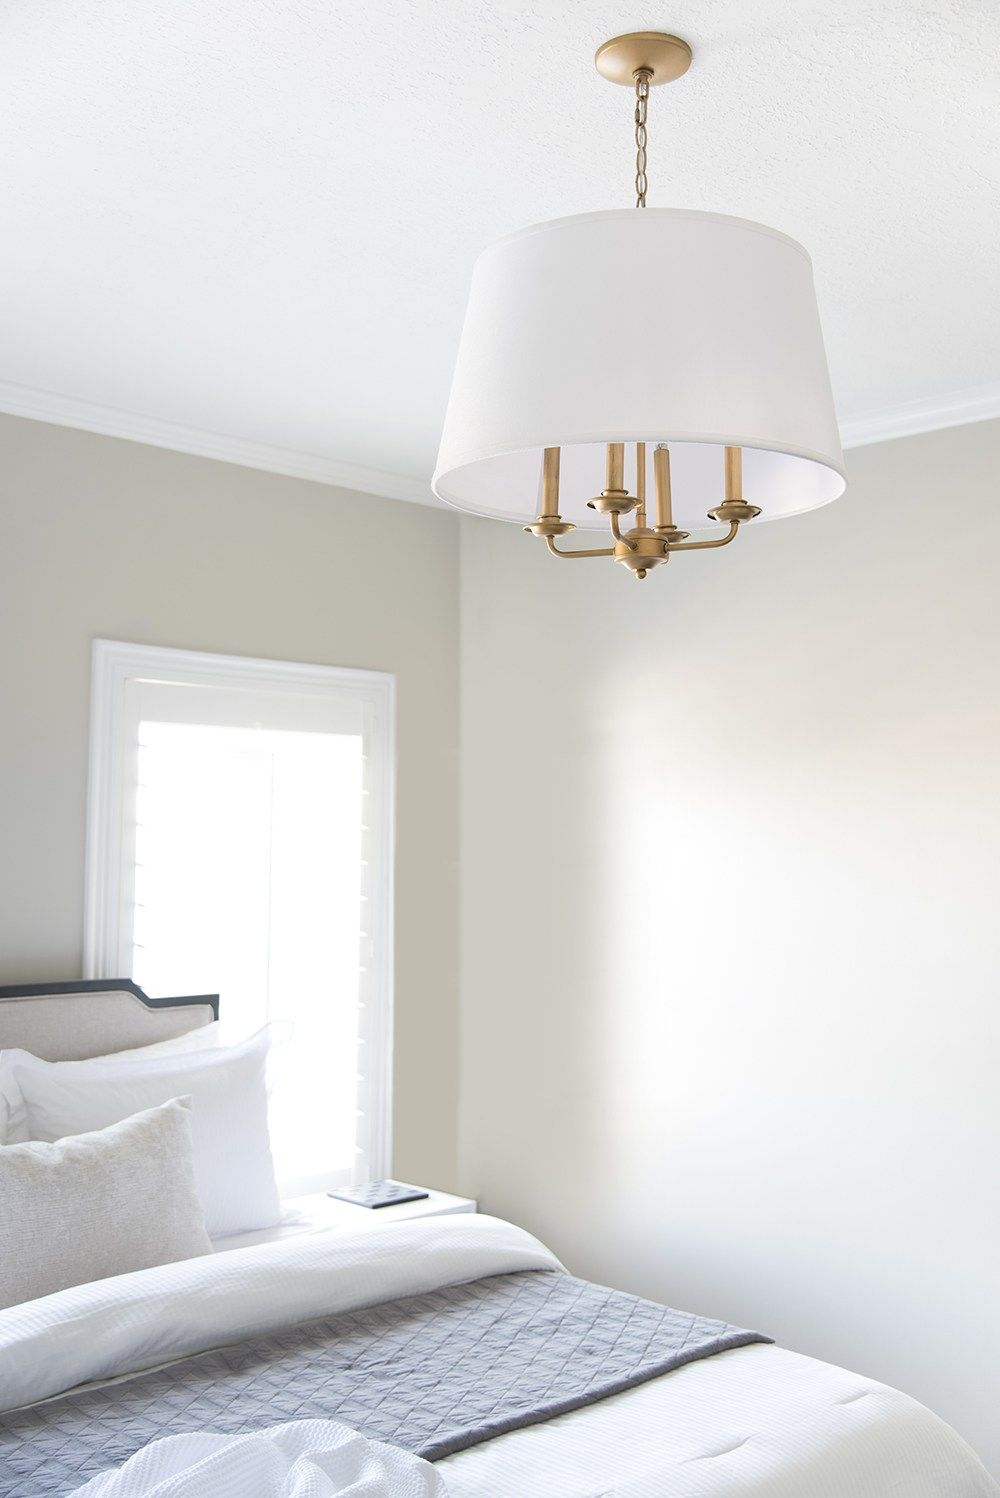 Swapping Our Builder Grade Lights The Best Fixtures From Lowe S Bedroom Light Fixtures Bedroom Lighting Light Fixtures